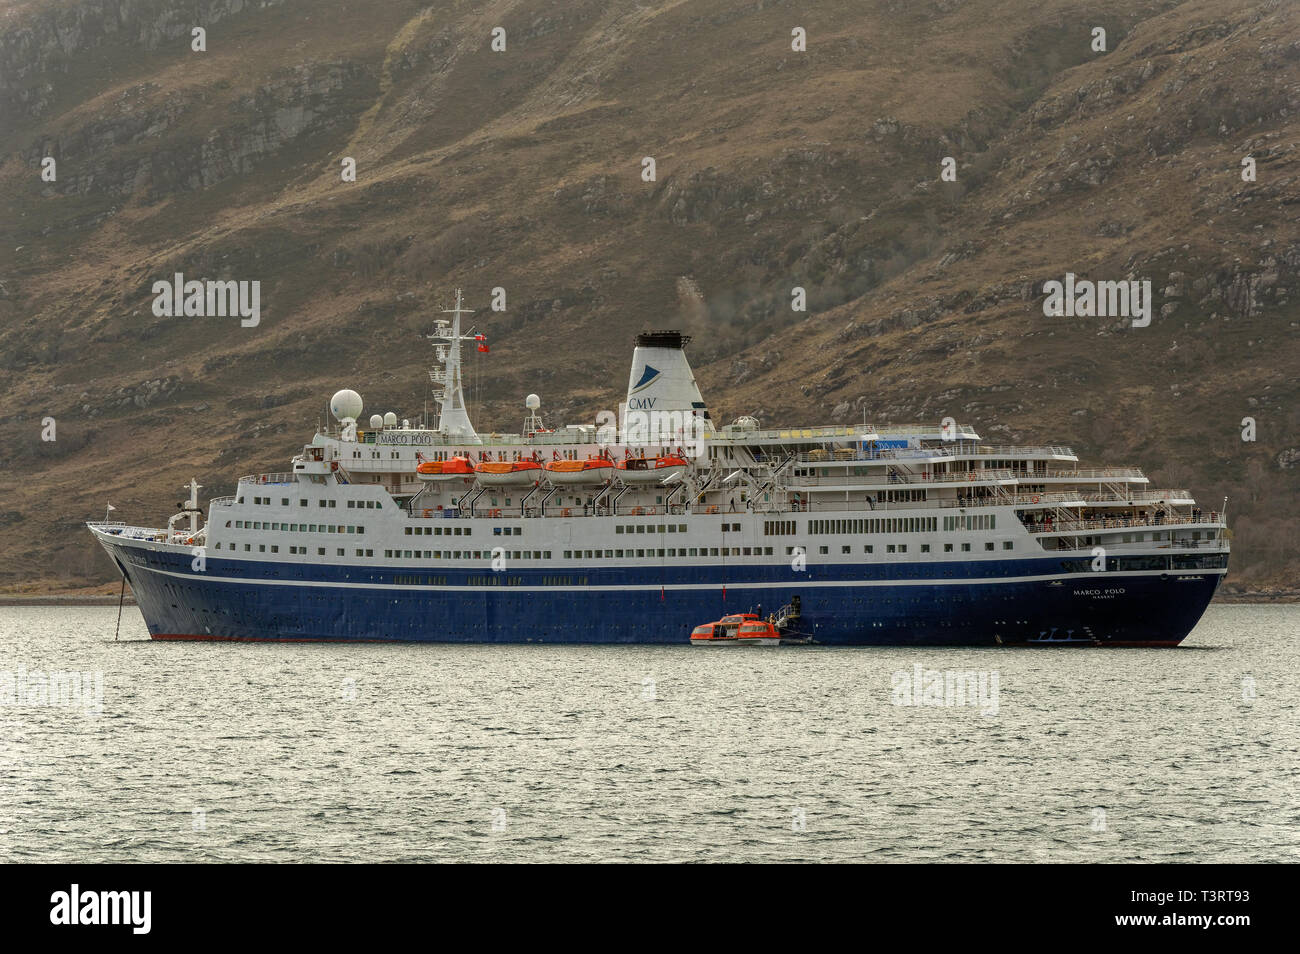 ULLAPOOL ROSS AND CROMARTY SCOTLAND LINER MARCO POLO ANCHORED OFF ULLAPOOL IN LOCH BROOM TRANSPORTING PASSENGERS IN A LIFEBOAT INTO THE TOWN - Stock Image